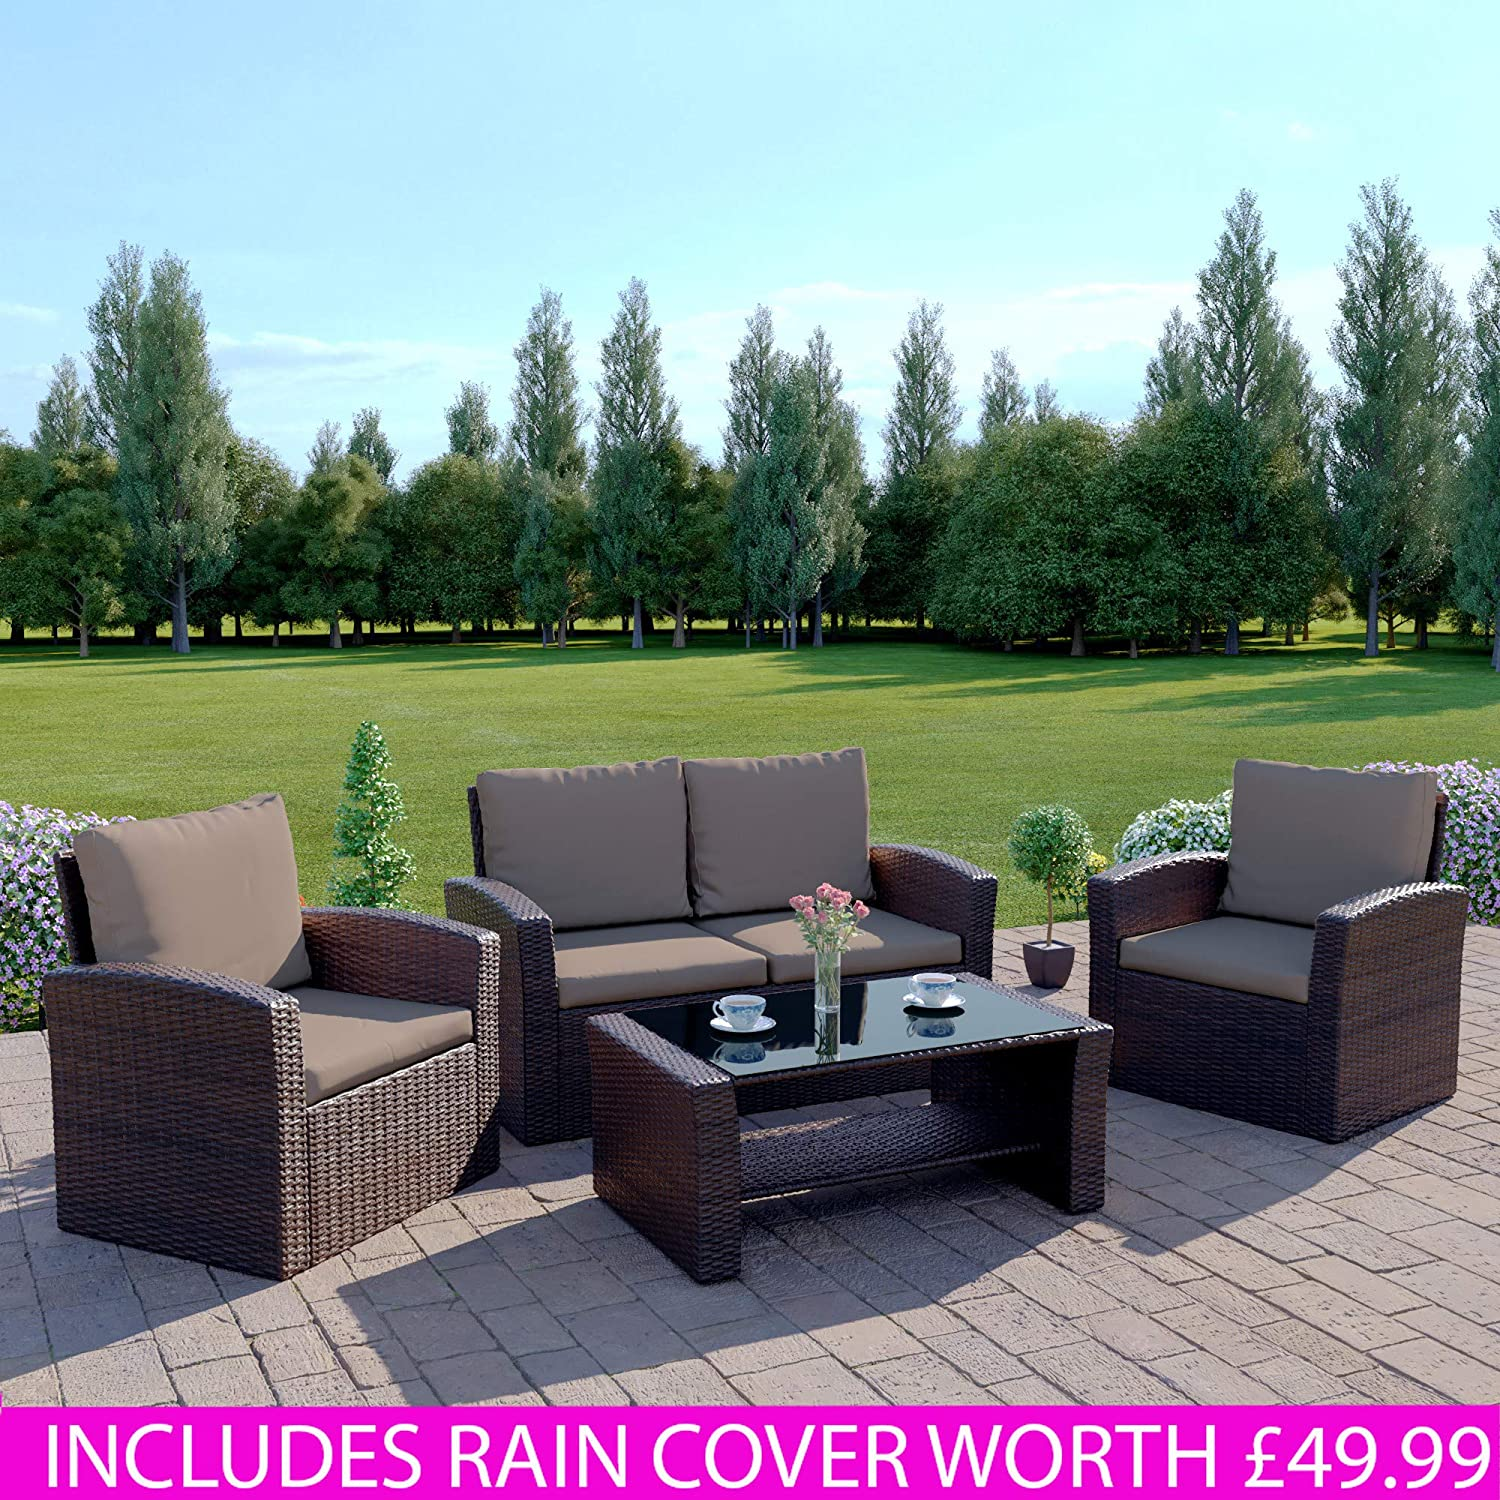 New Algarve Rattan Outdoor Garden Patio//Conservatory 4 Seater Sofa and Armchair set with Cushions and Coffee Table.INCLUDES PROTECTIVE COVER Conservatory Sofa Set Dark Brown with Dark Cushions